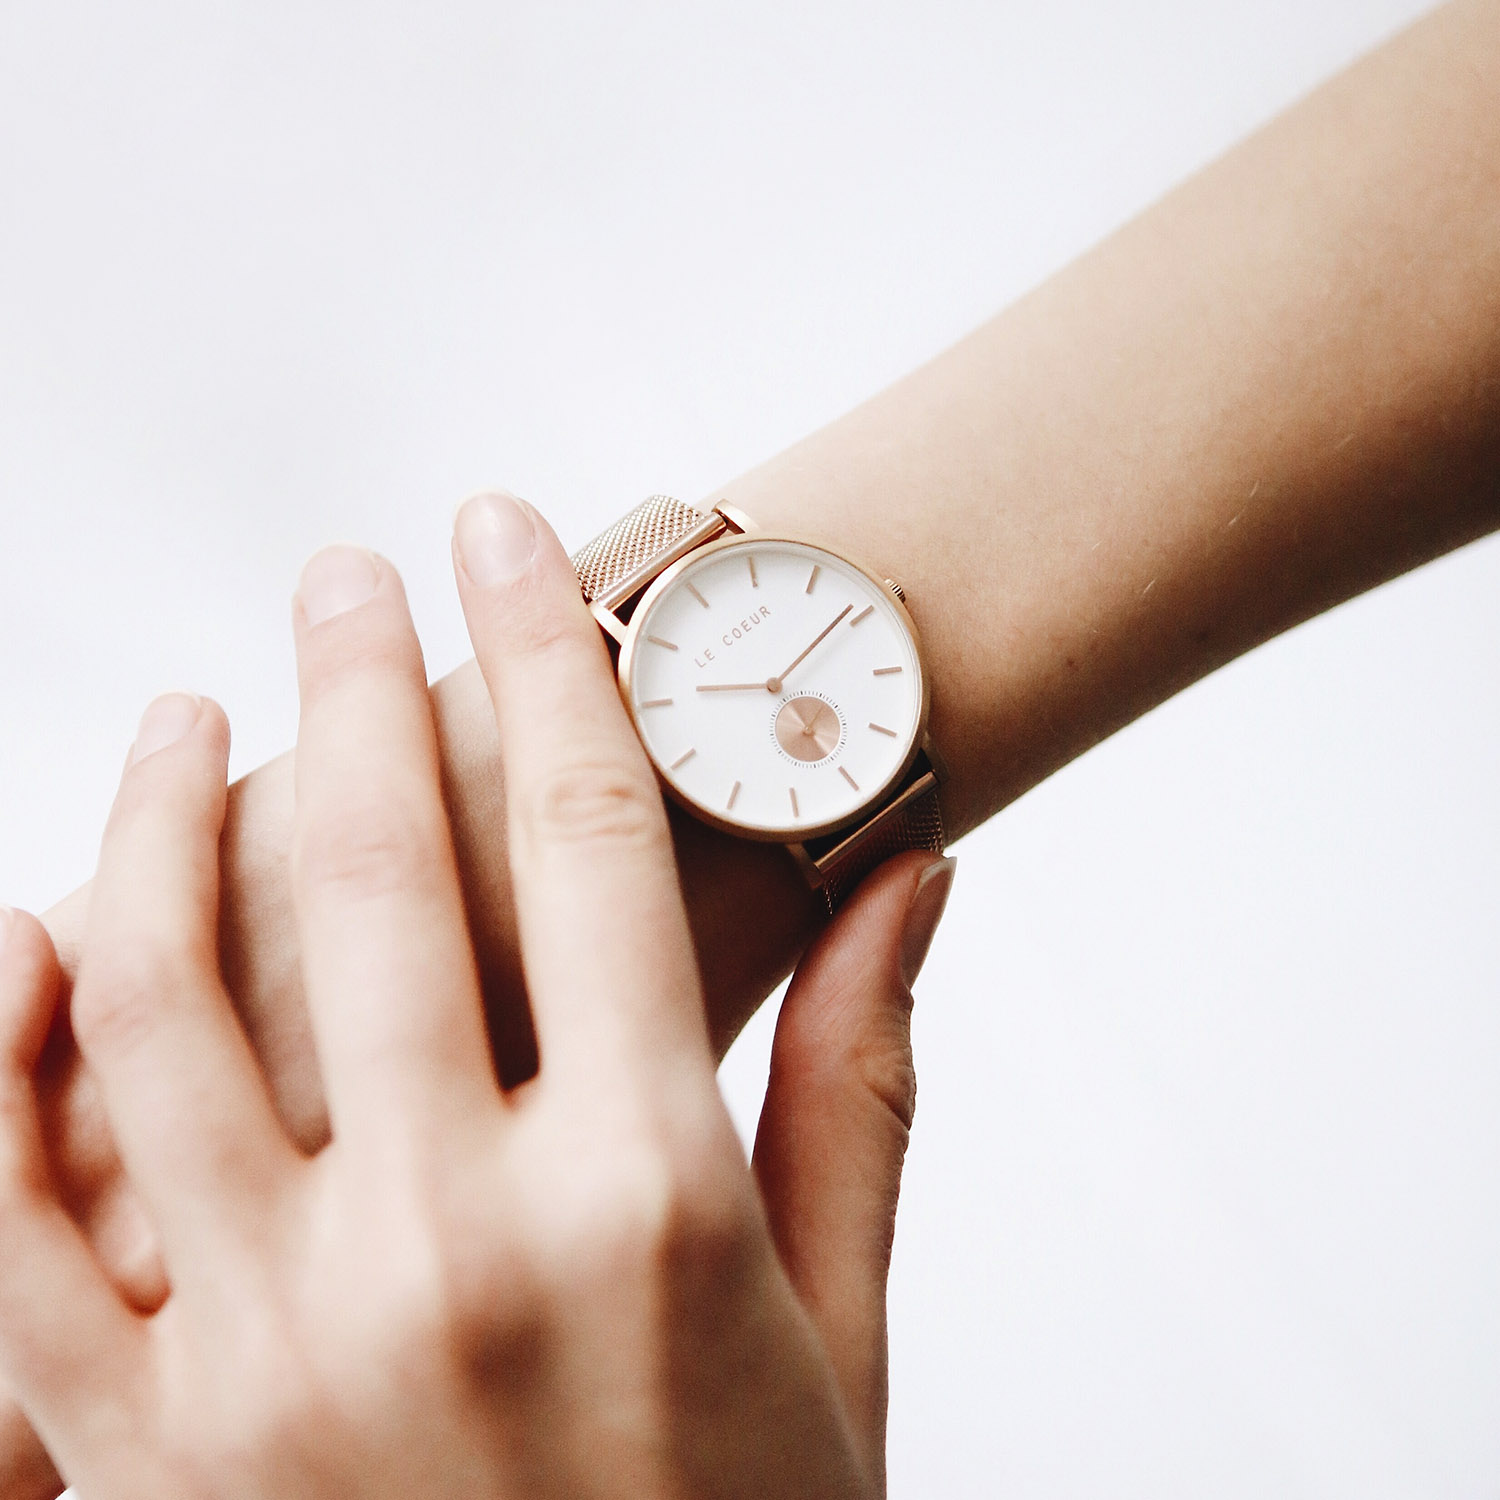 Le Coeur Rose Gold Victoria Timeless Watch_1.jpg